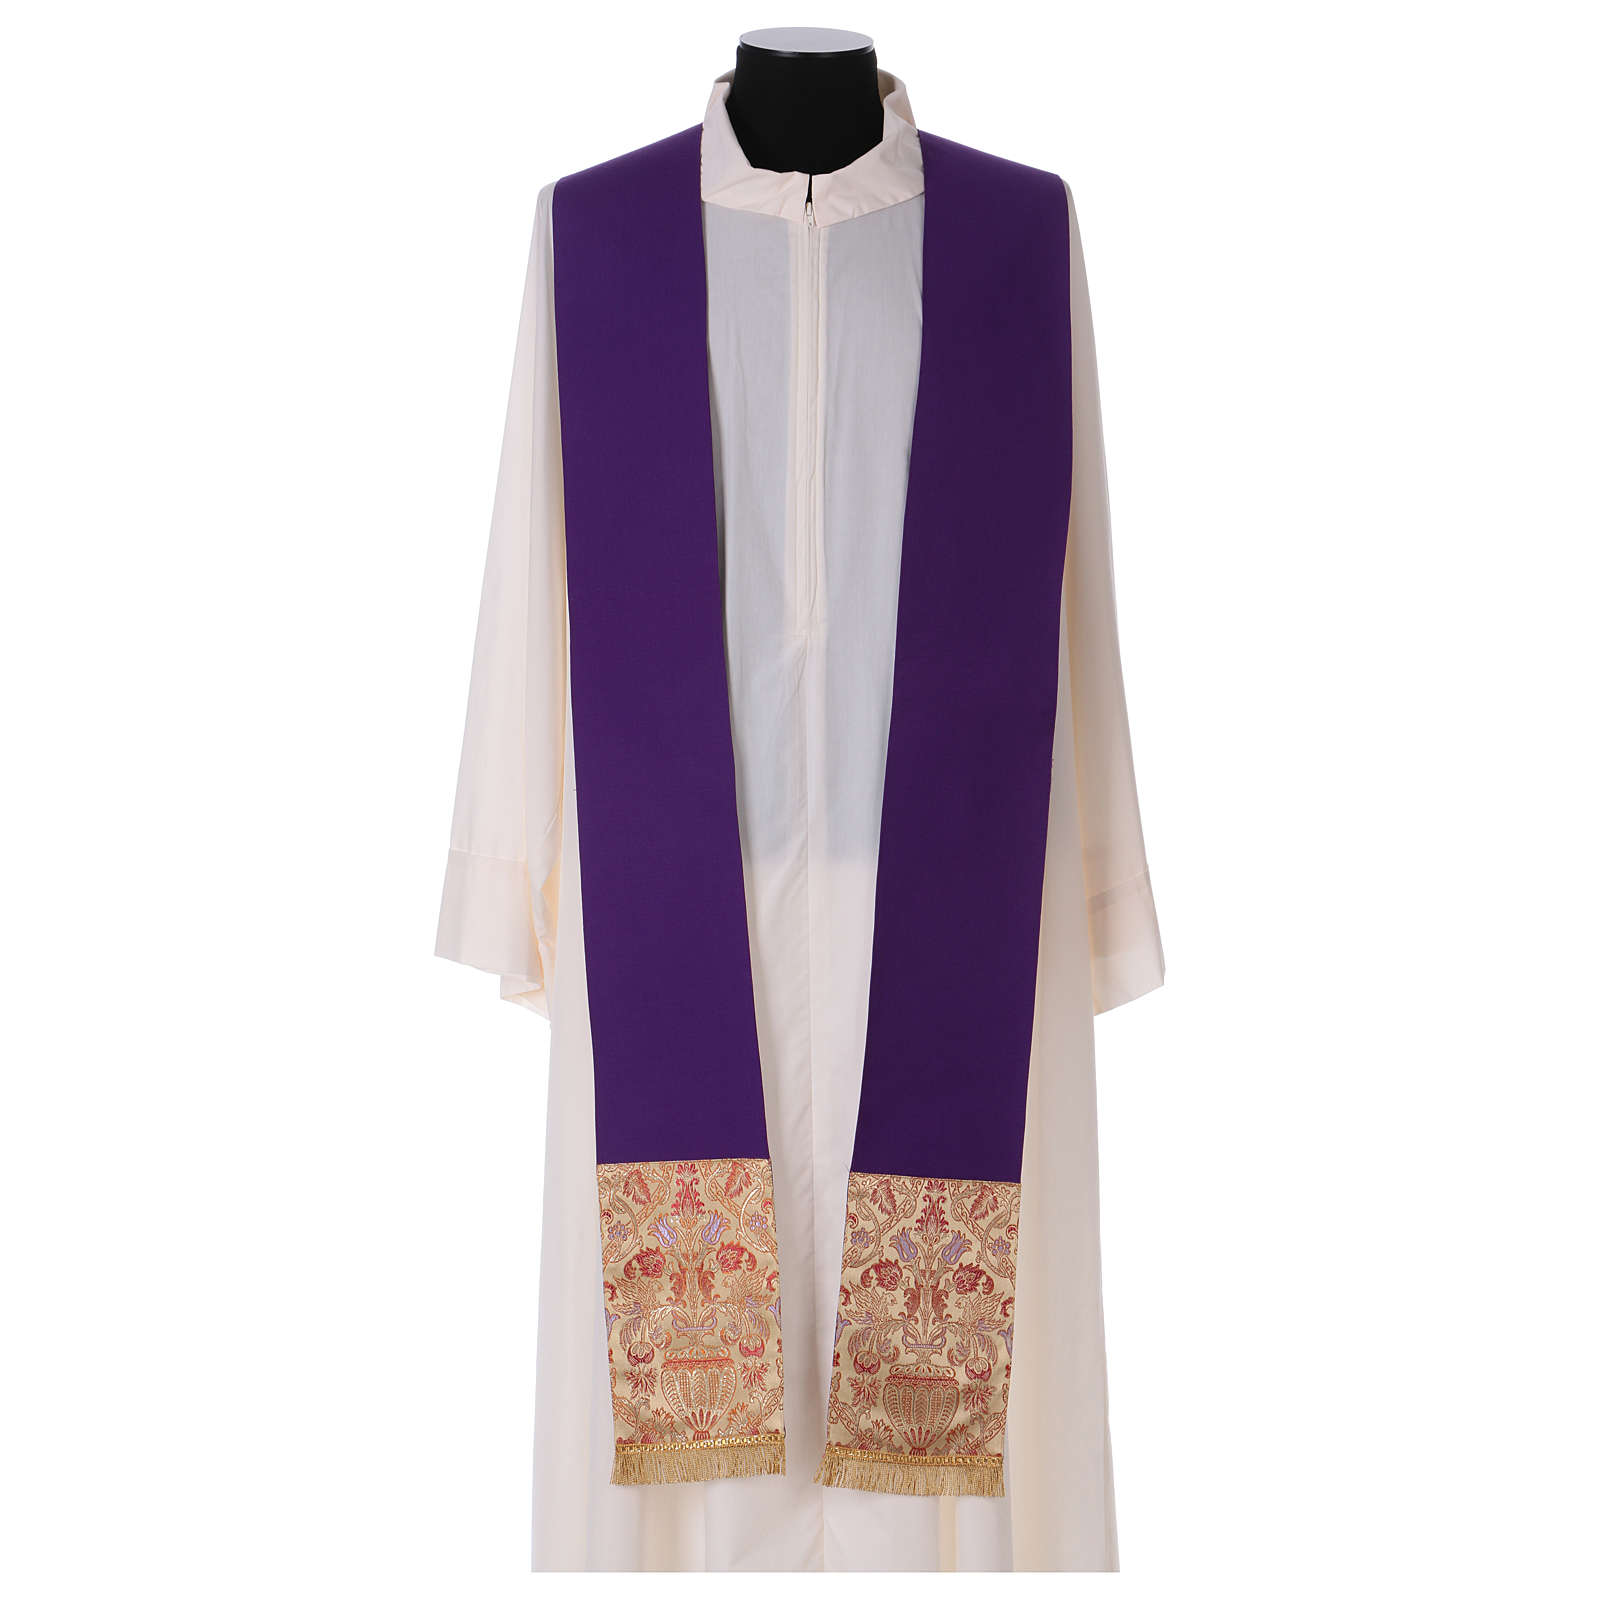 Catholic Priest Chasuble in pure wool with lampas gallon and neckline 4